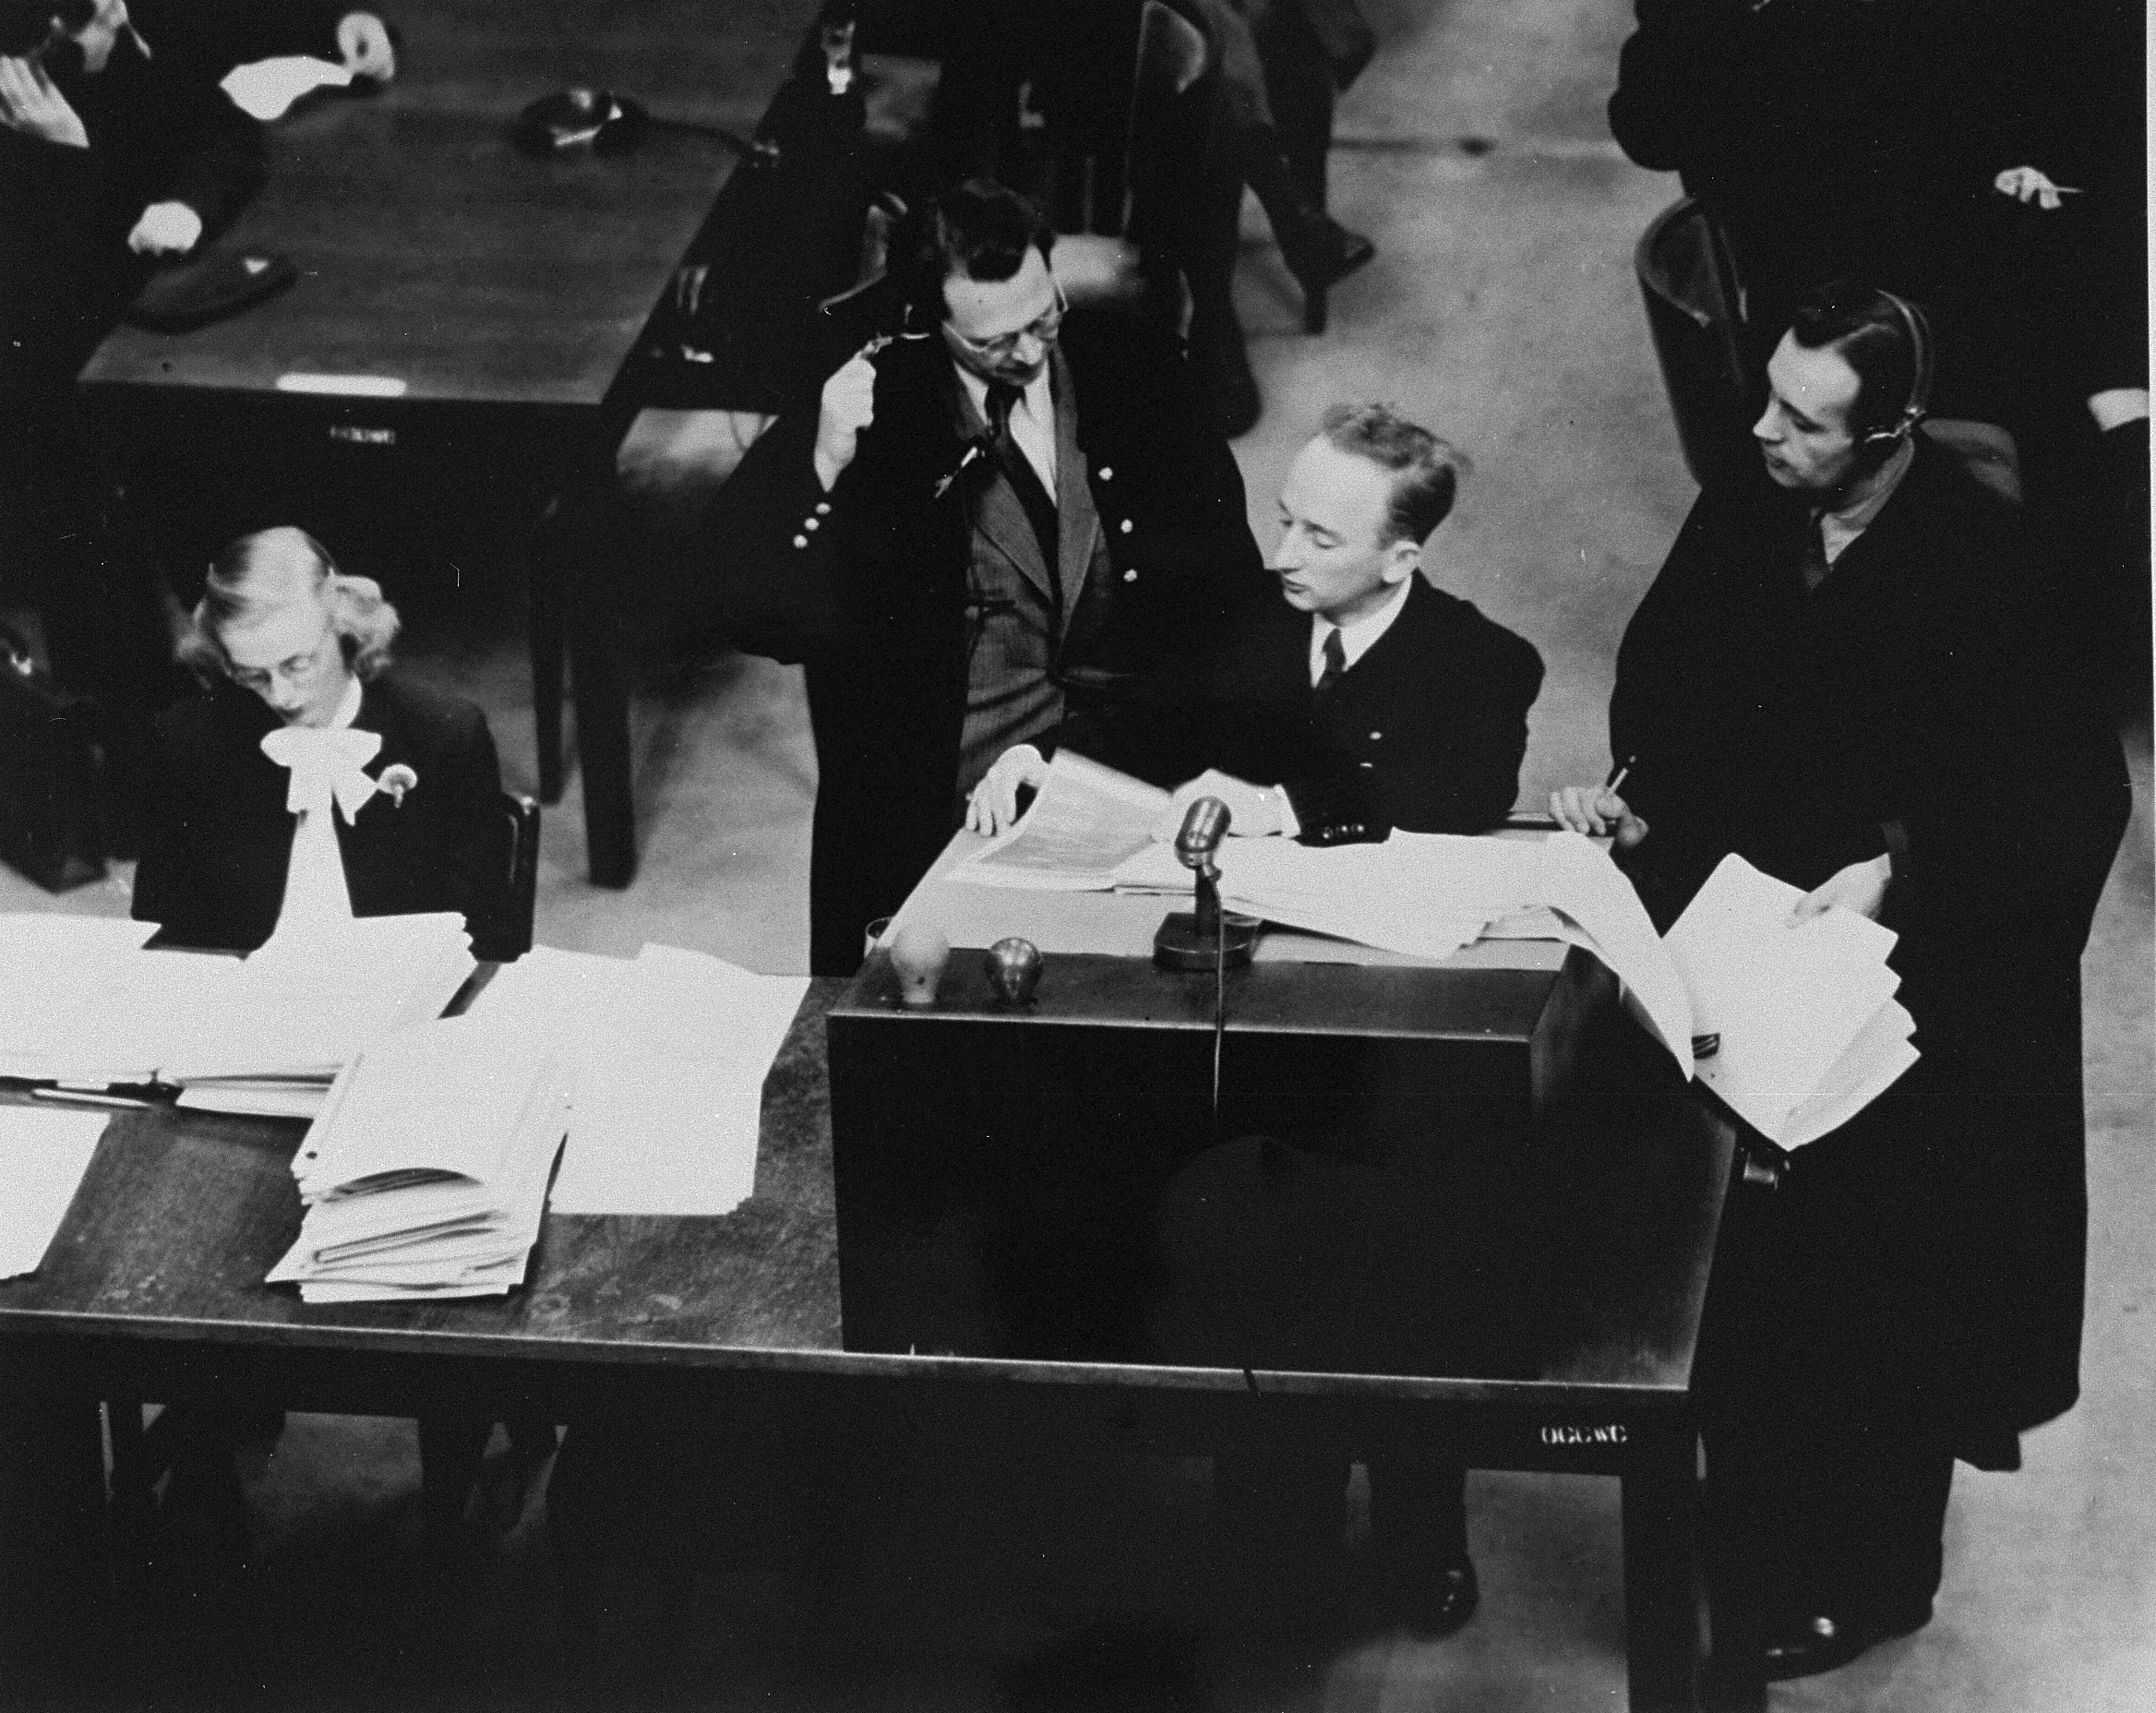 Chief prosecutor Benjamin Ferencz presents documents as evidence at the Einsatzgruppen Trial.